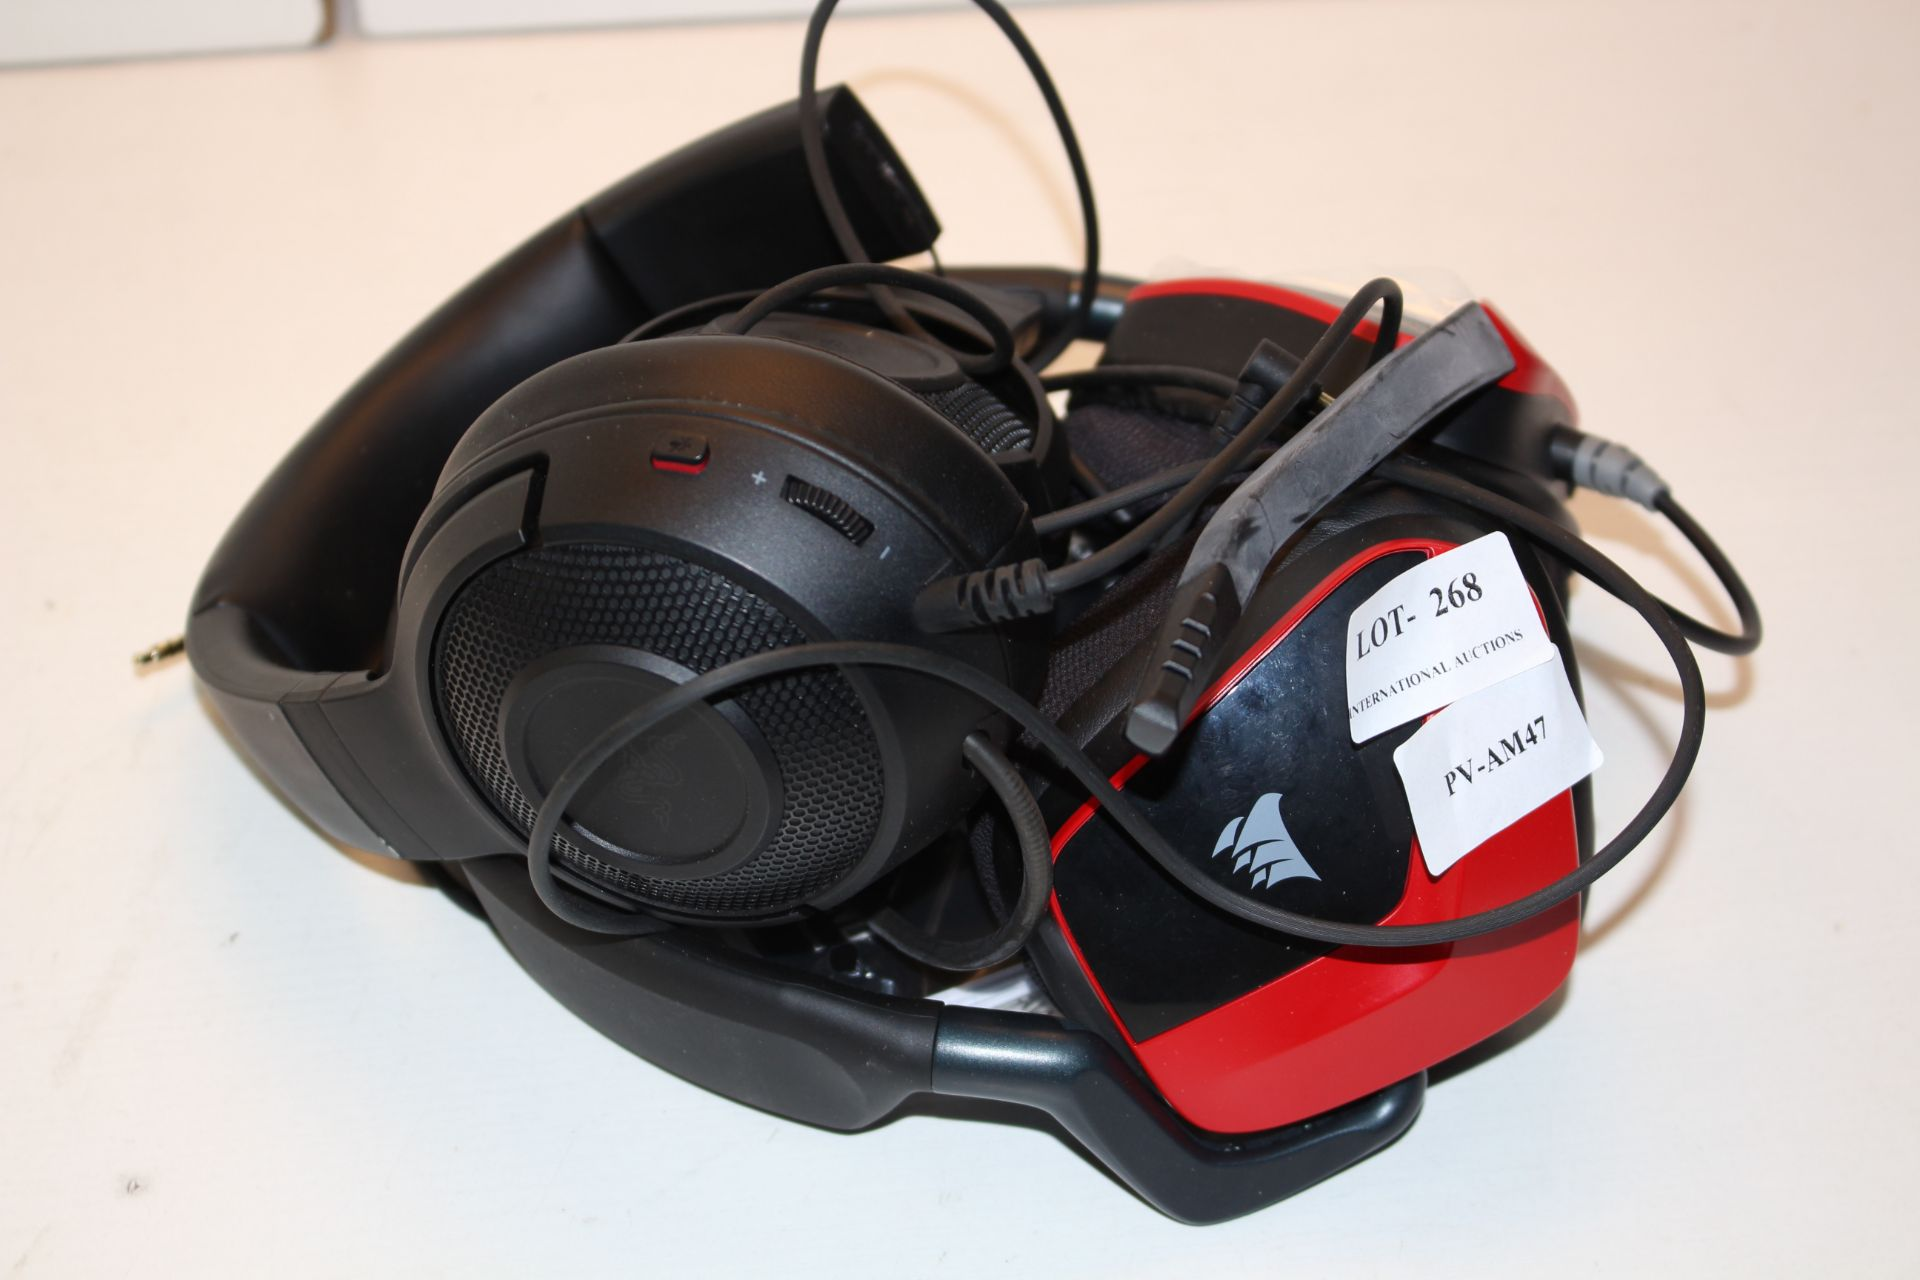 2X SETS GAMING HEADPHONES BY CORSAIR & RAZER Condition ReportAppraisal Available on Request- All